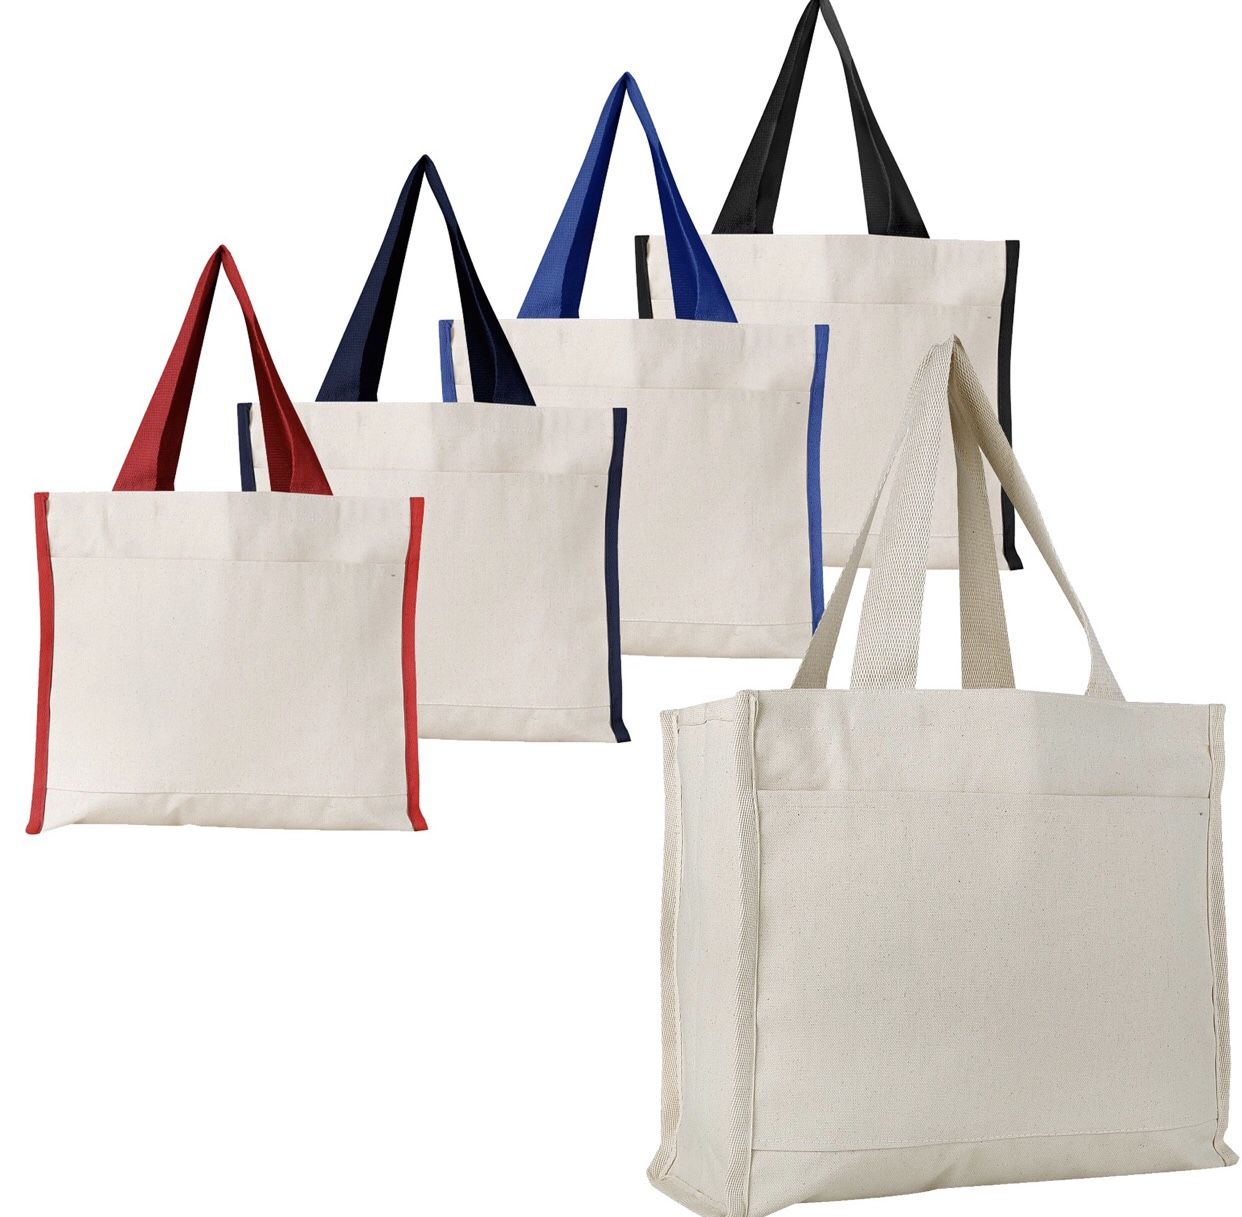 d0e38c456 Wholesale Canvas Tote Bags with Front Pocket Blank or Printed Shop at  BagzDepot with Confidence! As low as $3.60